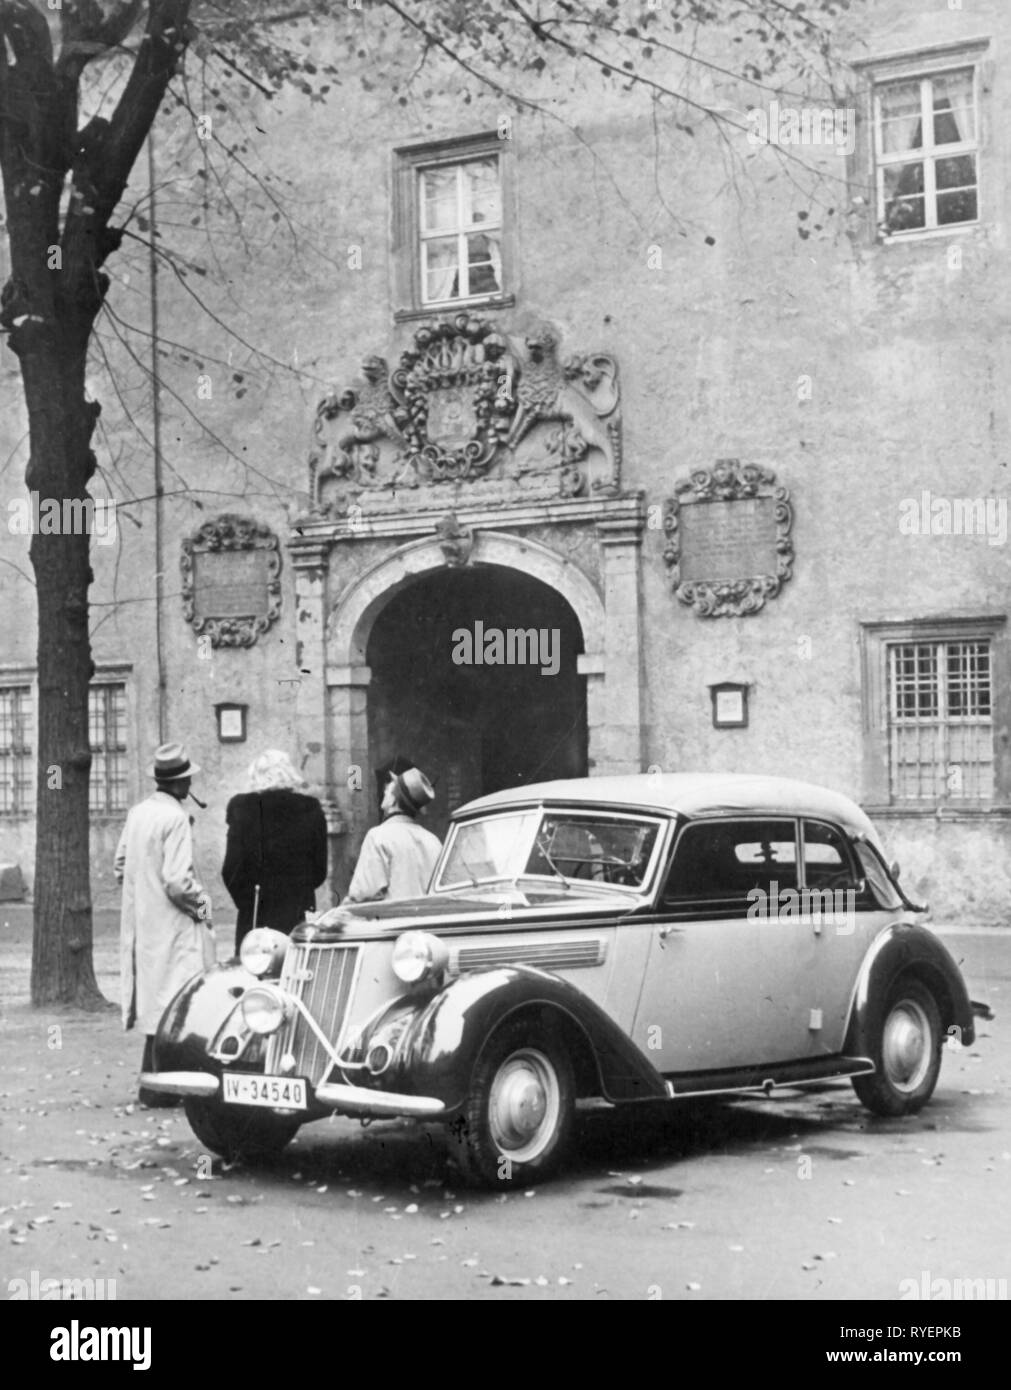 transport / transportation, car, vehicle variants, Wanderer W23, view from left ahead, Germany, 1938, serial number plate district Chemnitz, Saxony, W 23, headlamp, headlights, headlamps, round headlight, headlight, folding top, convertible top, folding tops, convertible tops, folding roof, folding roofs, convertible, cabriolet, convertibles, cabriolets, upper middle class, motor car, auto, automobile, passenger car, motorcar, motorcars, autos, automobiles, passenger cars, German, German Reich, 1930s, 30s, people, group, groups, 20th century, tra, Additional-Rights-Clearance-Info-Not-Available - Stock Image